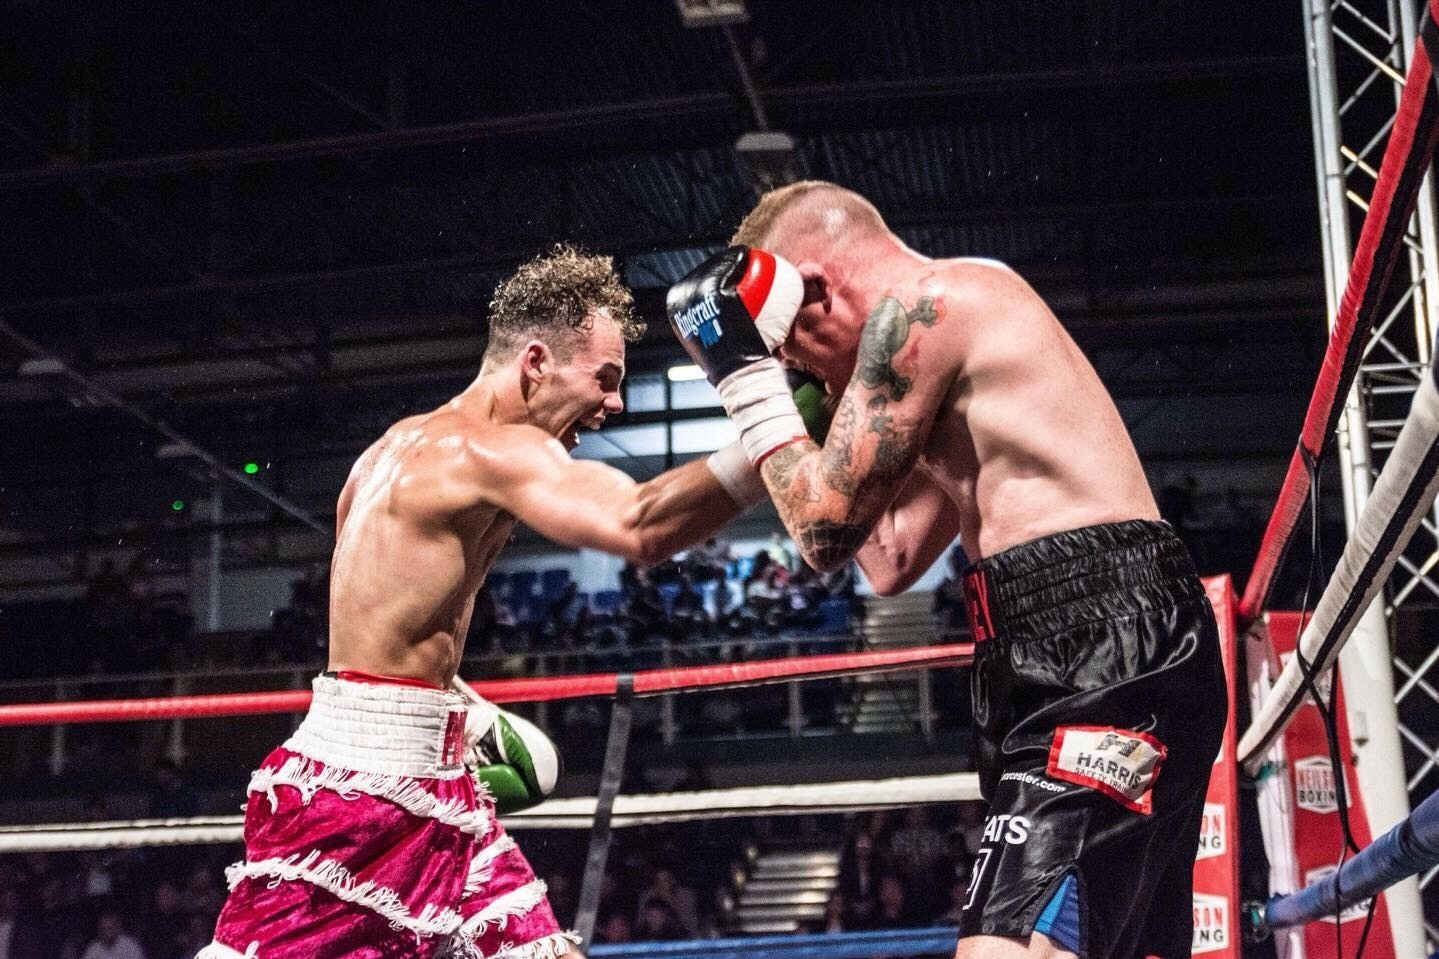 Alex Florence (left) lands a series of blows on his opponent on his way to victory